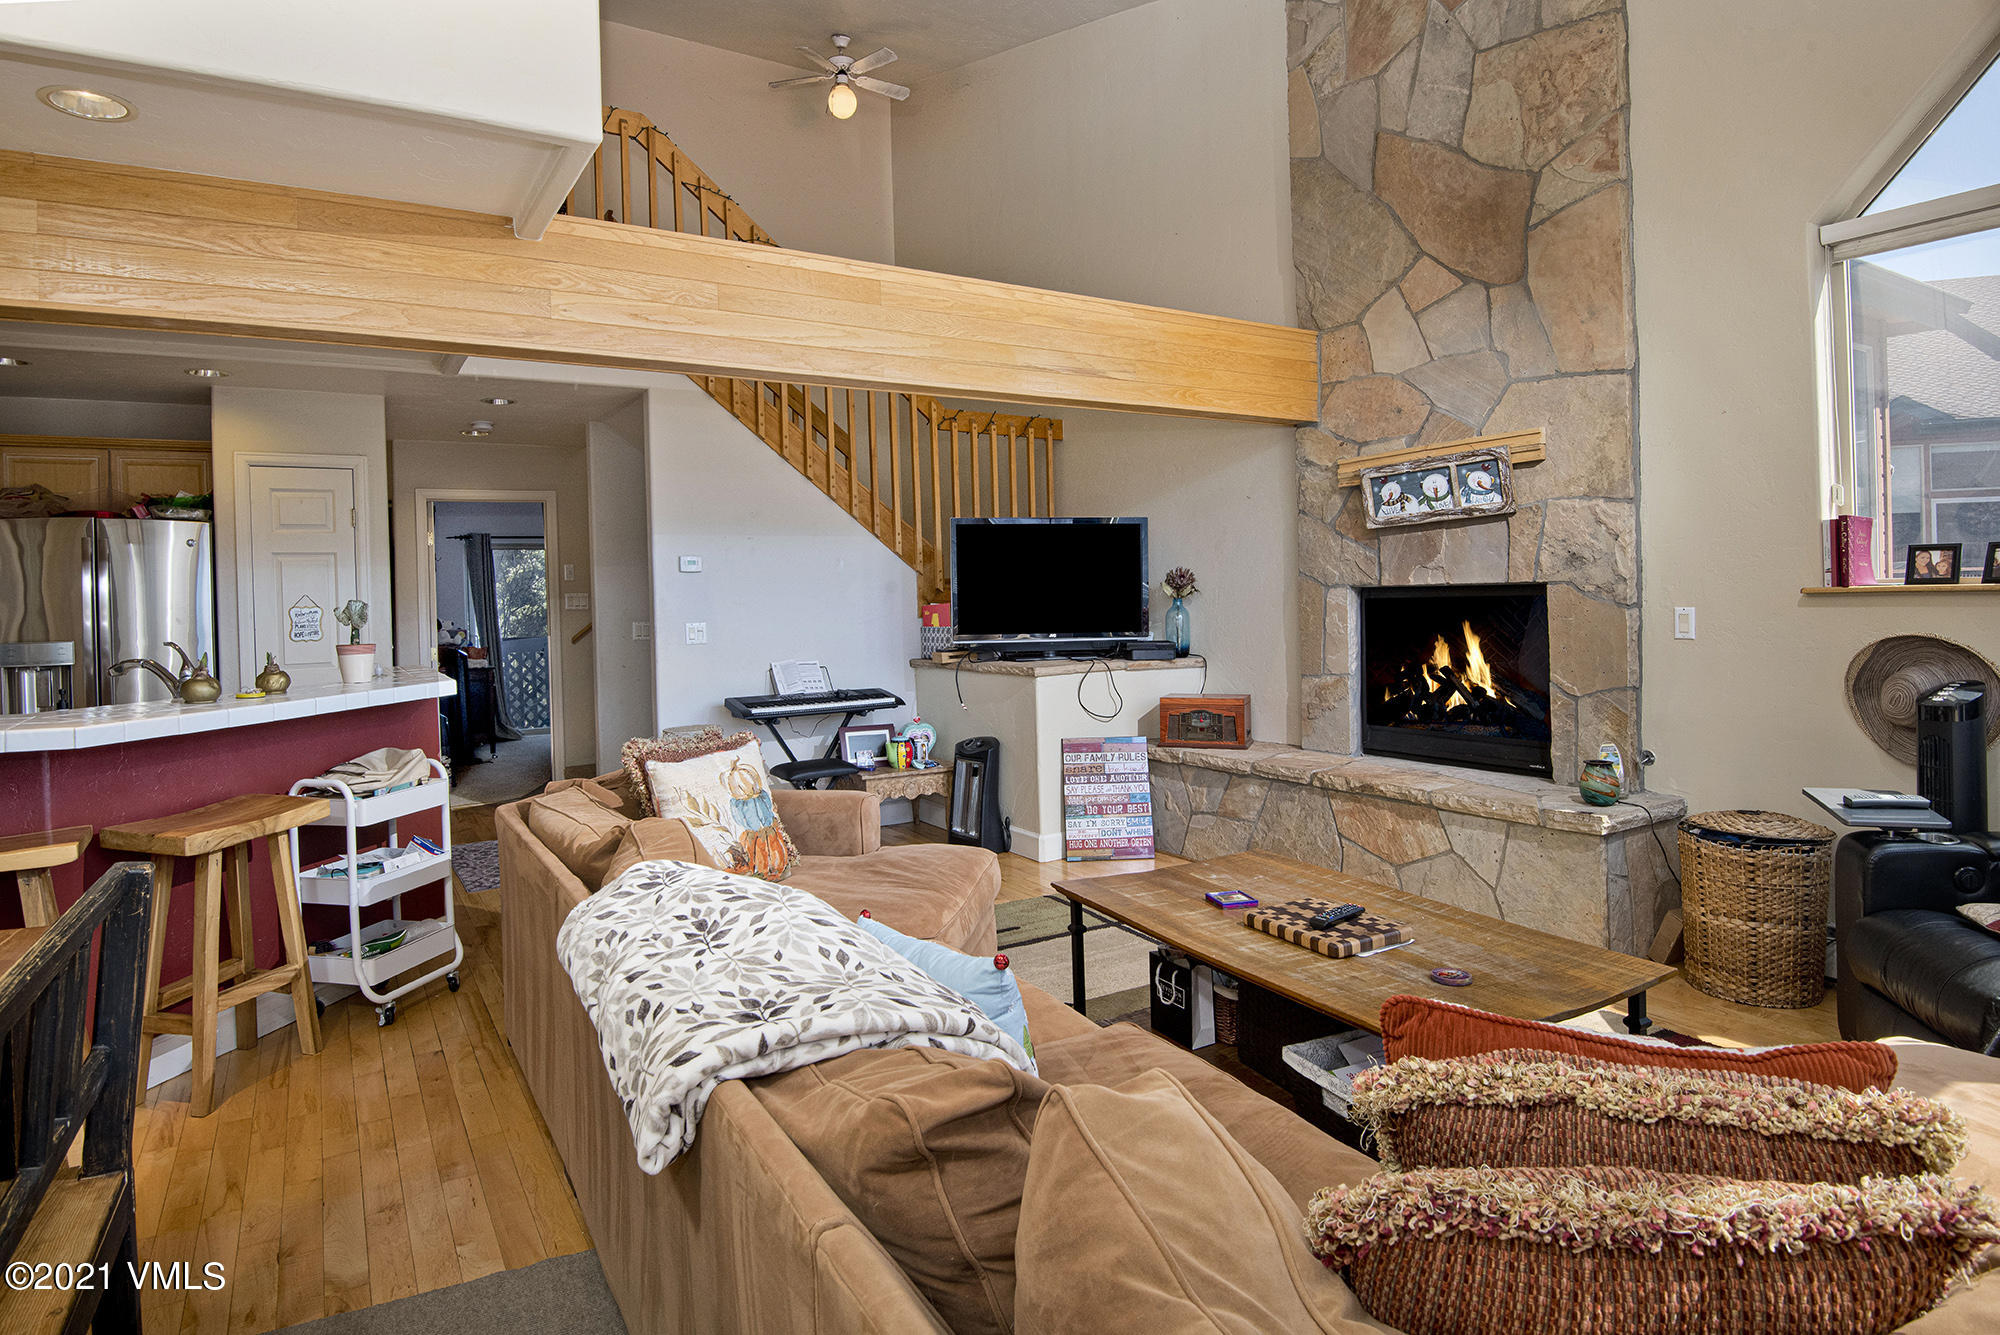 A rare 4 bedroom, 4 bath home with a 2 car garage in lower homestead priced aggressively. Elk Meadow Townhomes have a lovely, lofted ceiling creating an open living room with built-in fireplace flowing to a spacious kitchen area. The main floor also offers a large deck overlooking the clubhouse and pool. This home also has a completely finished 1 bedroom lockoff with a separate exterior entrance and entrance from garage which creates numerous opportunities. The lock off was recently remodeled, however much of the kitchen and bathrooms upstairs are original, leaving opportunities for someone to make improvements over time that match their personal taste. There is room for 2 surface parking spaces as well as a 2-car garage and overflow parking offered in the complex. Appliances in home and lock off included and most furniture can be made available.